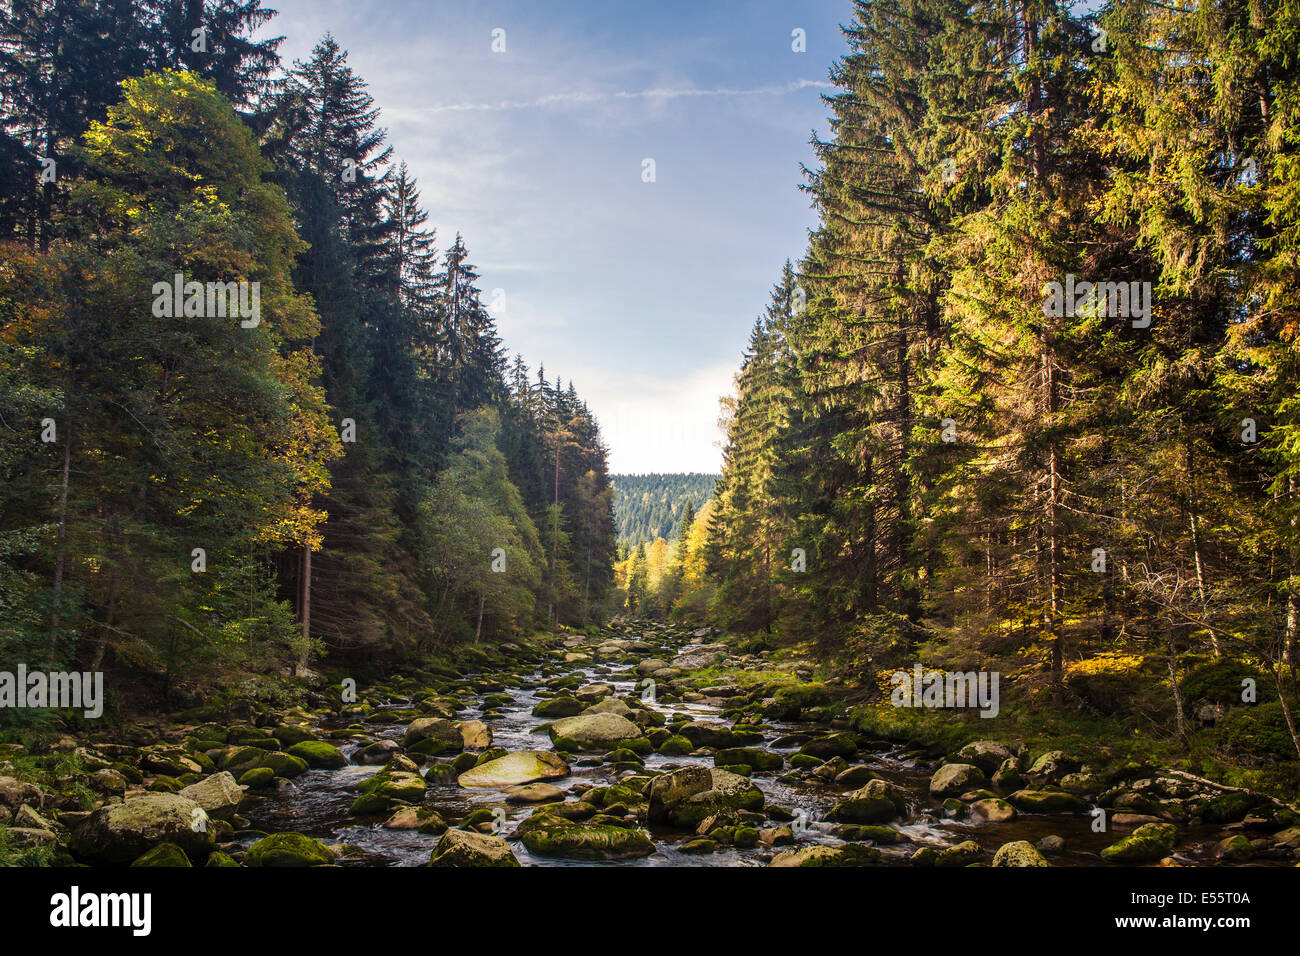 Valley of Vydra River, Bohemian Forest, Czech Republic - Stock Image